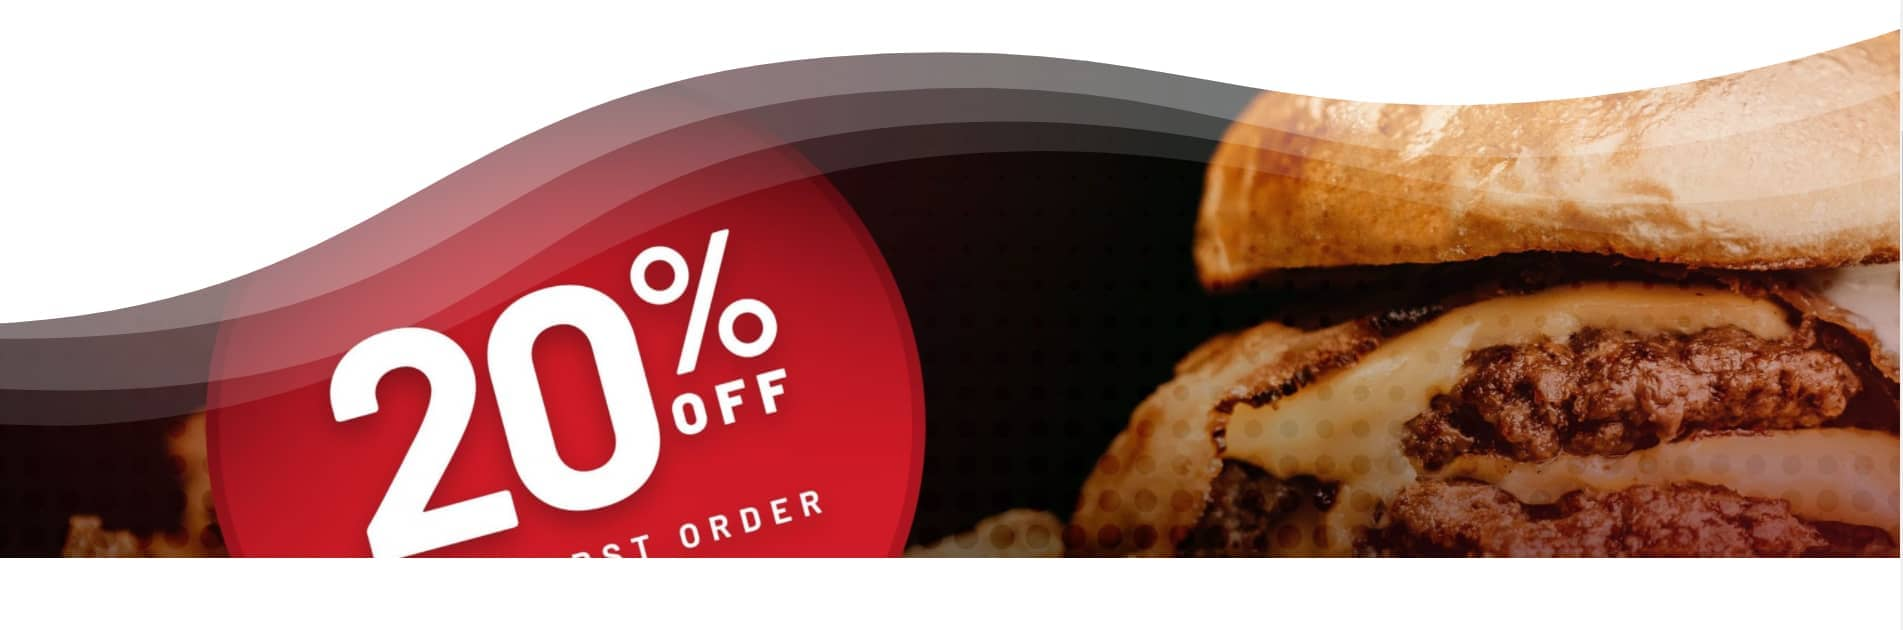 Avada Takeout Discount Banner